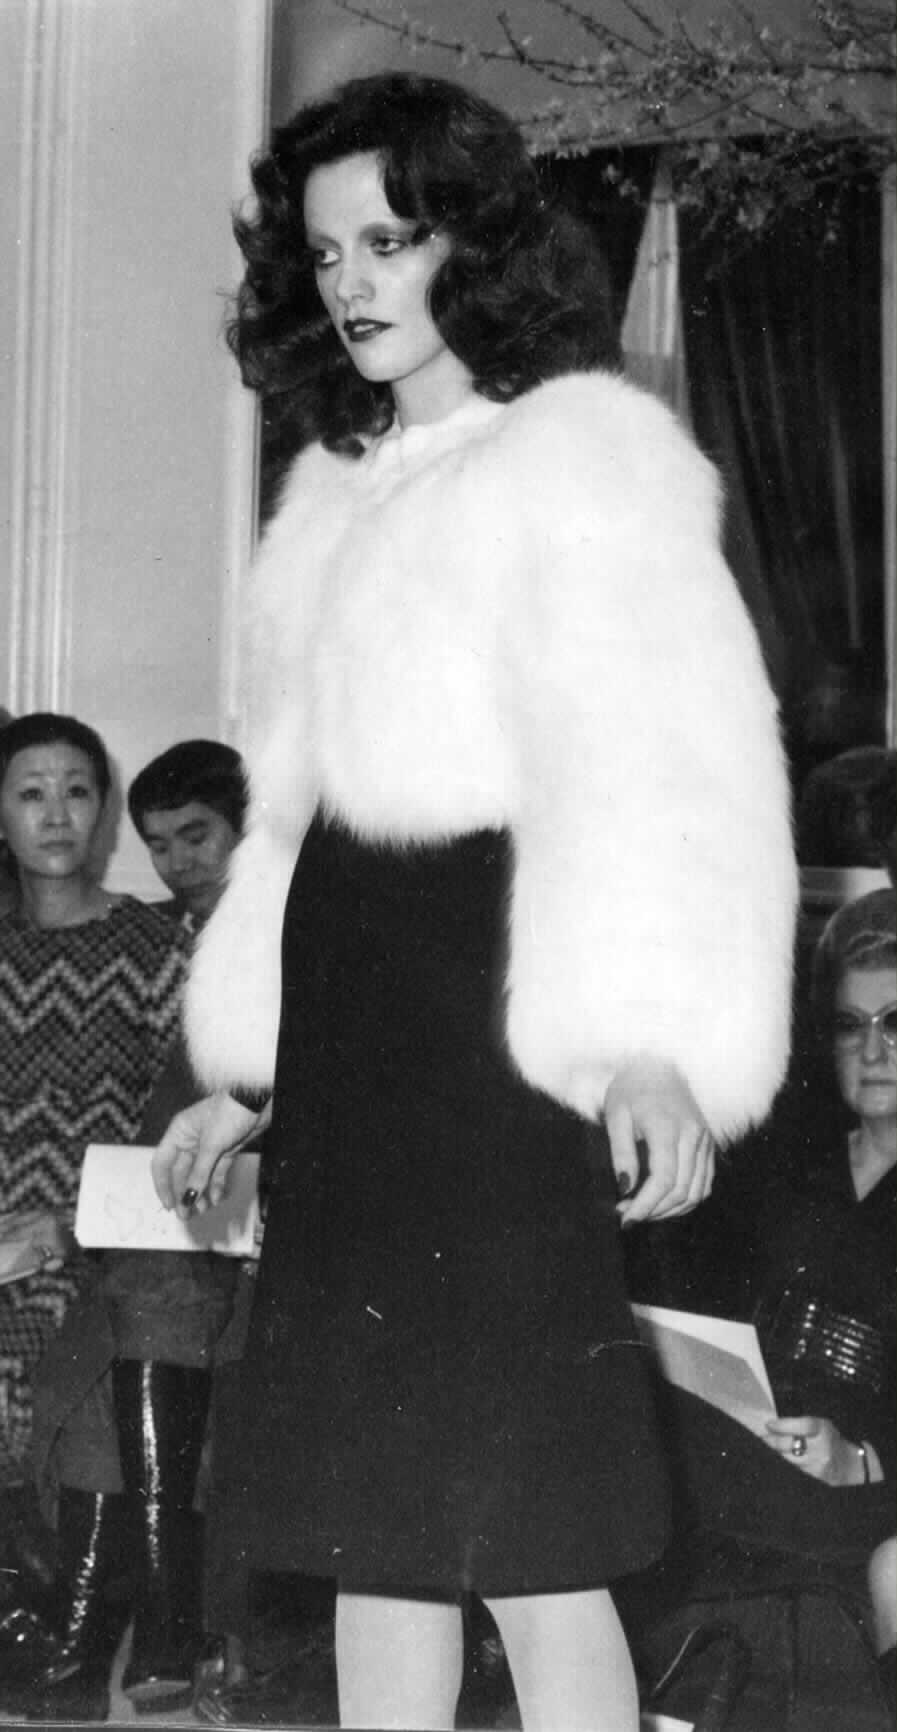 Annie Ferrari for Yves Saint Laurent, Haute Couture, 1971    © F ondation Pierre Bergé - Yves Saint Laurent, Paris